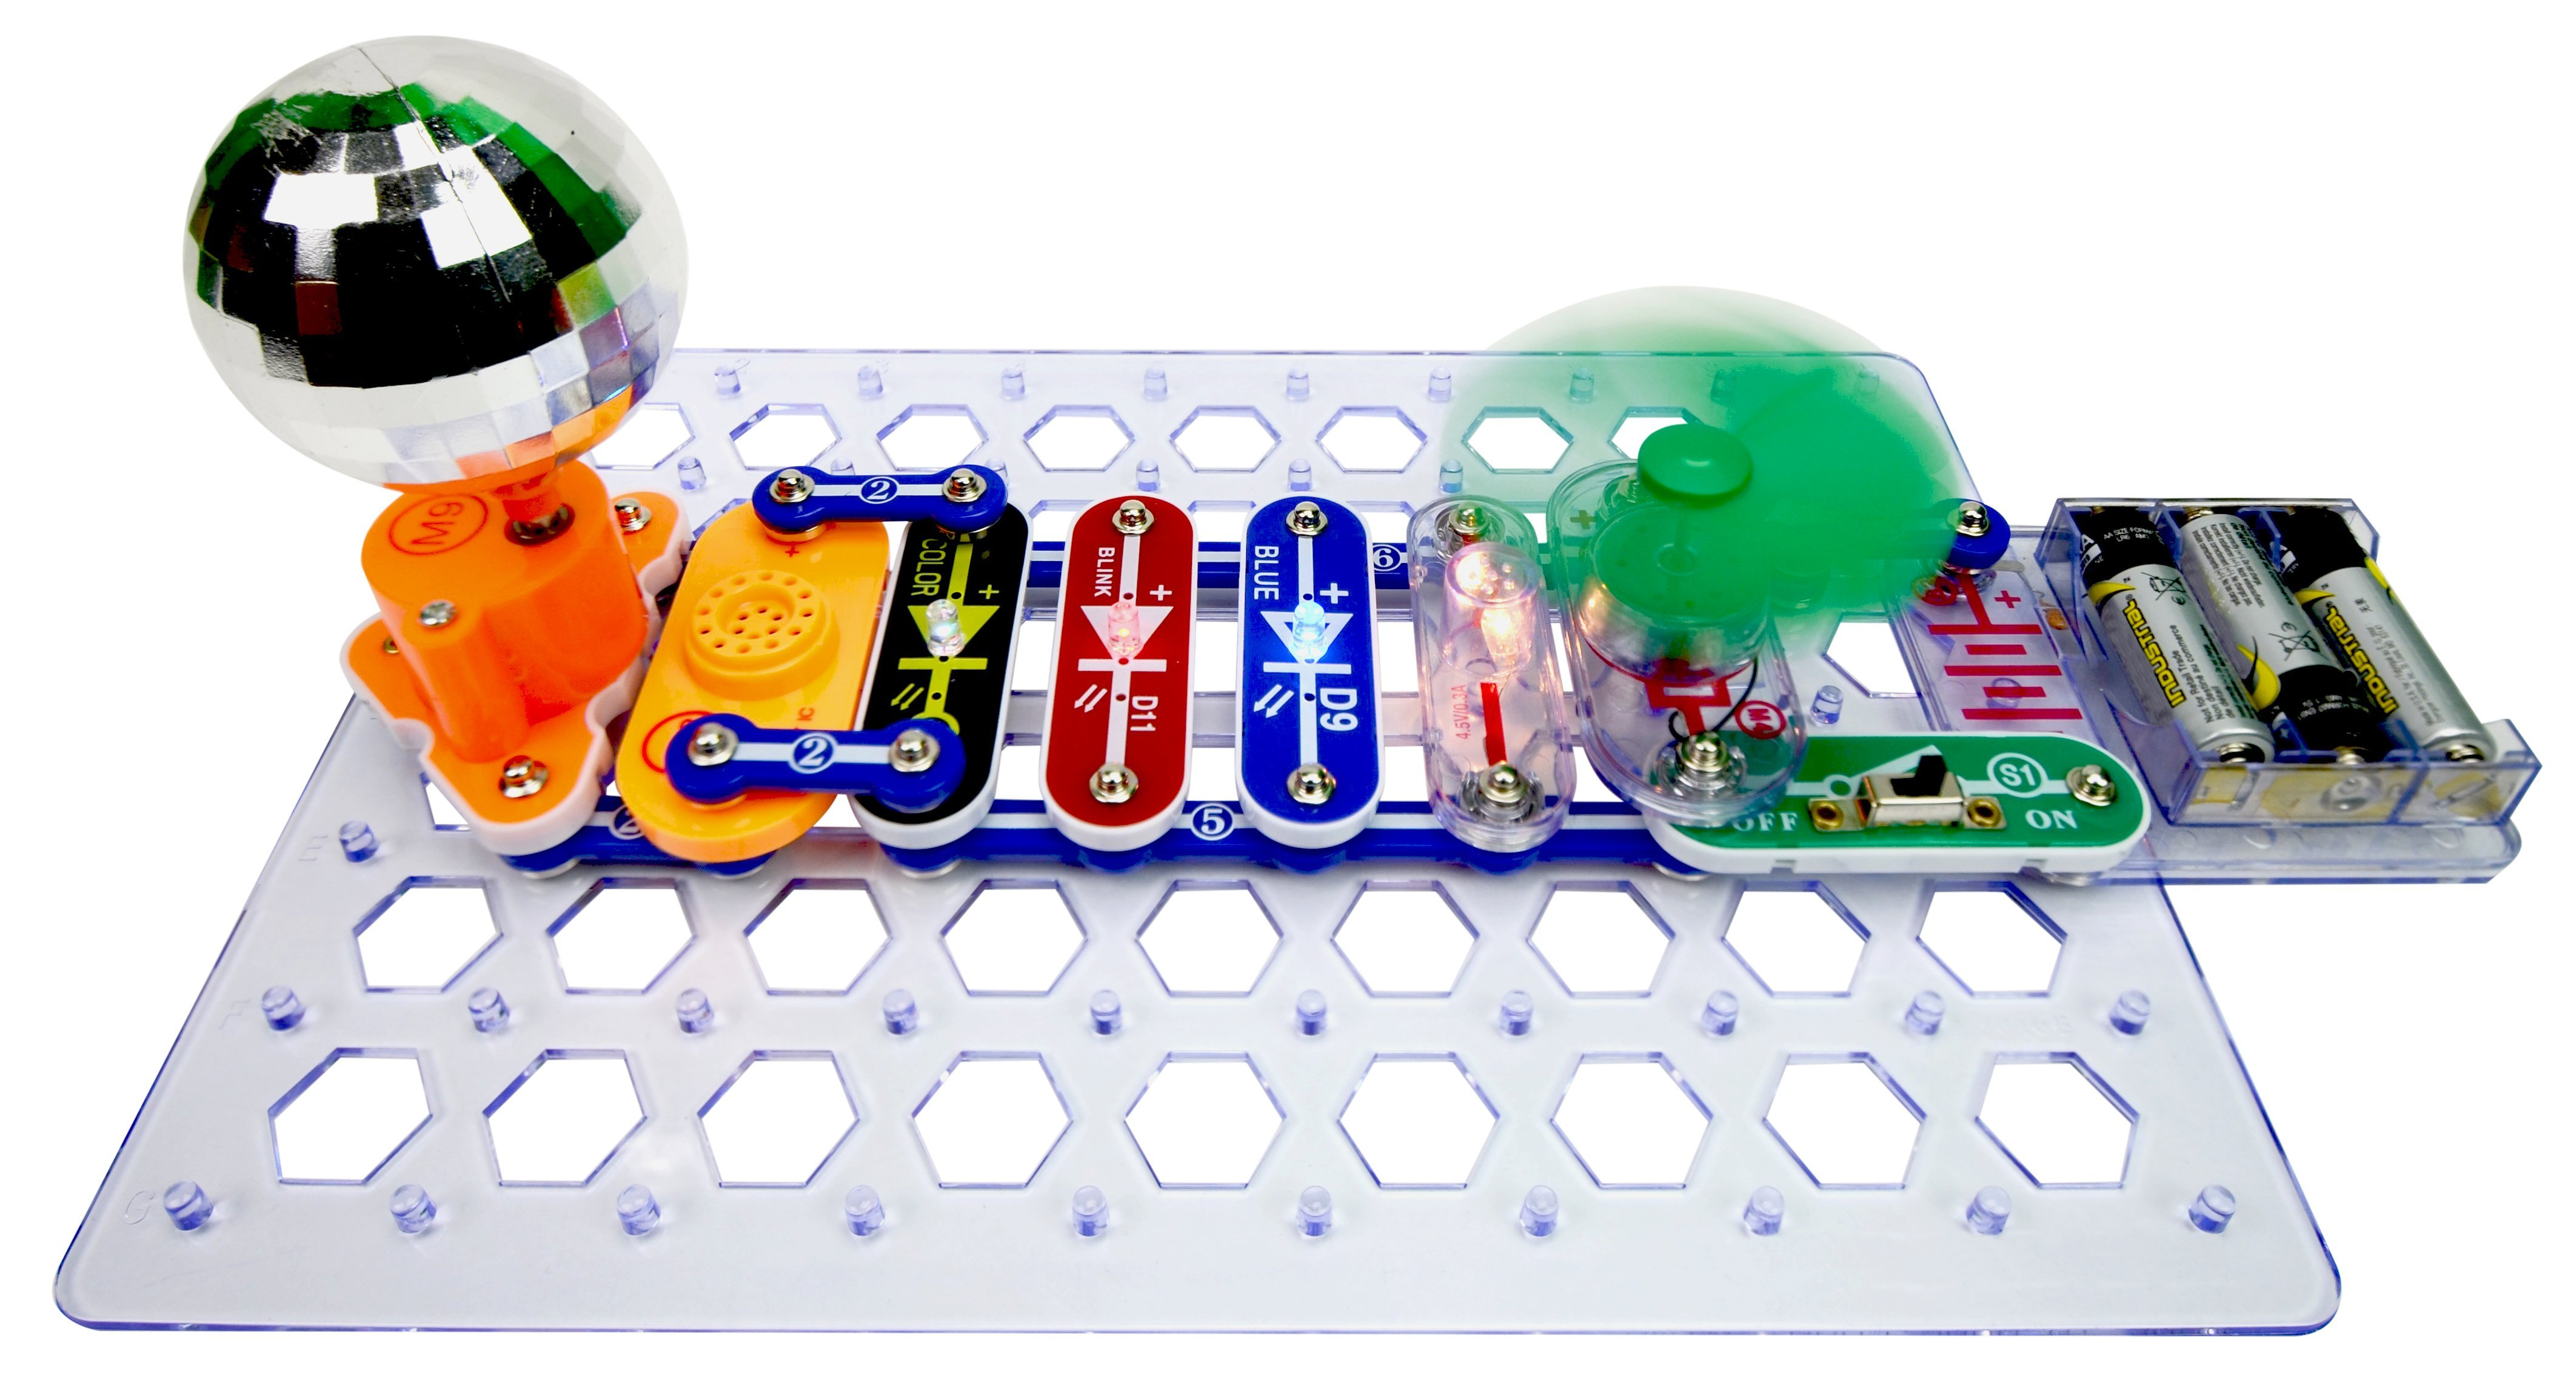 Snap Circuits 3d Meg Funique Science Games Kits And Teaching Lights Electric Circuit Kit By Elenco